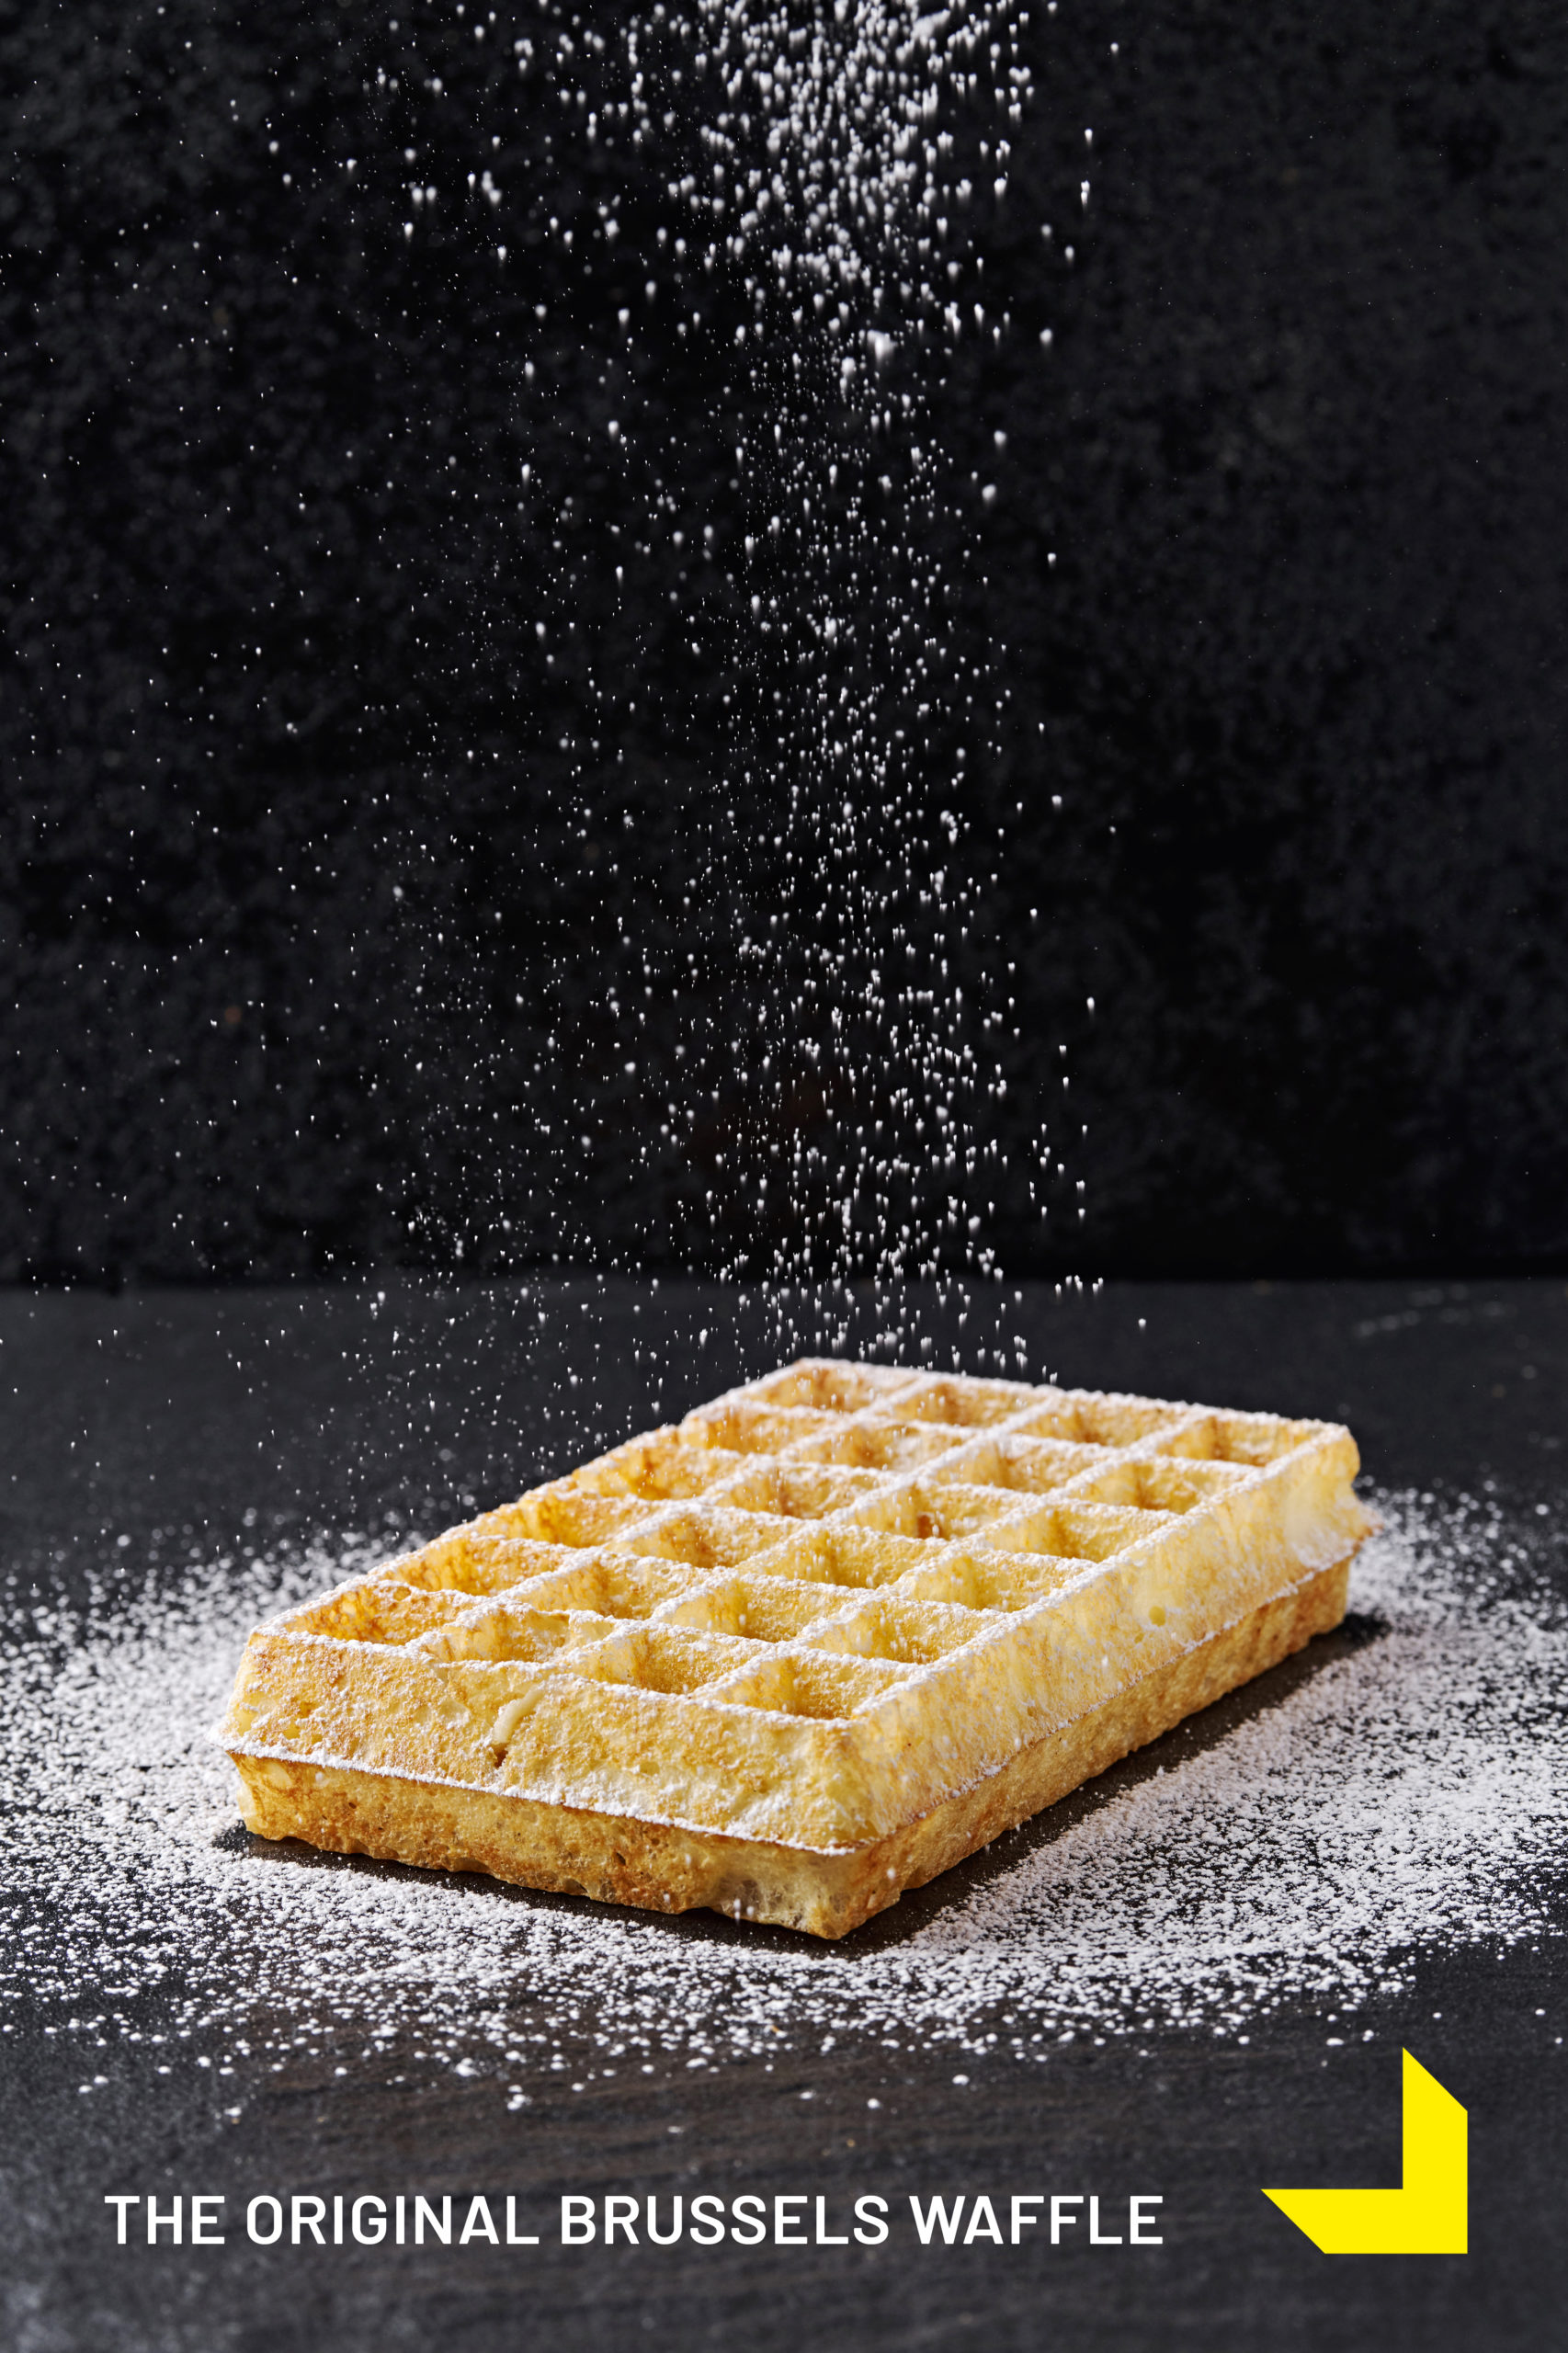 THE ORIGINAL BRUSSELS WAFFLE